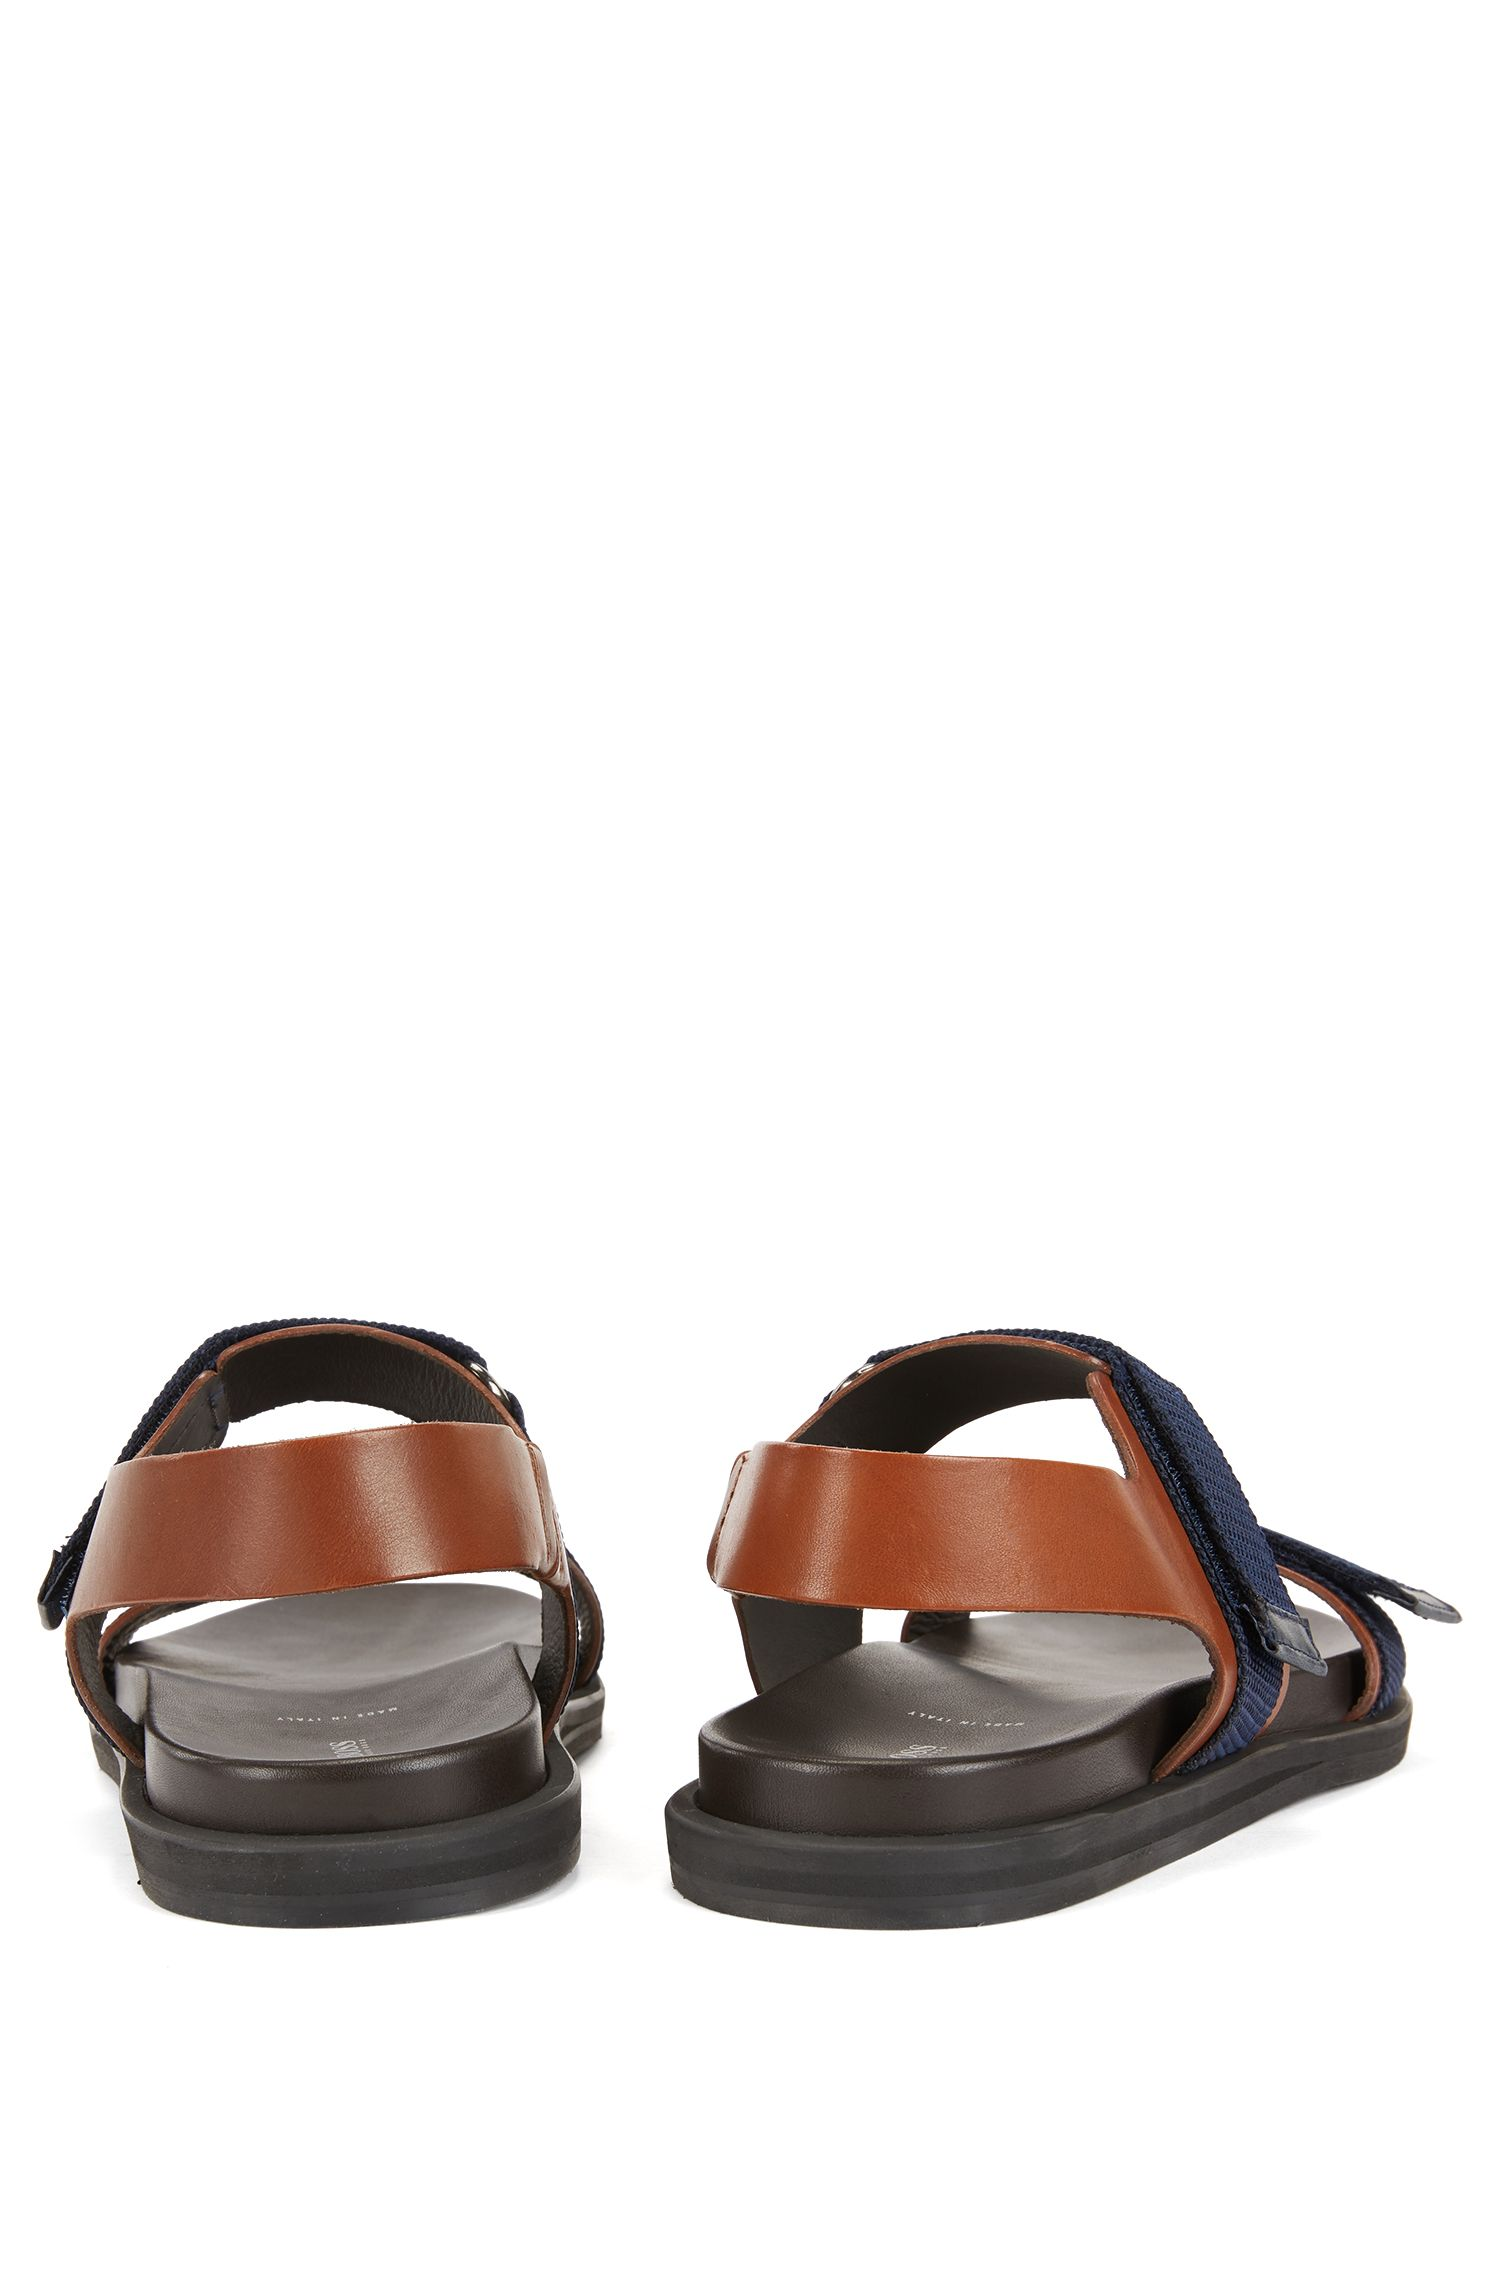 Italian calf-leather sandals with EVA rubber sole